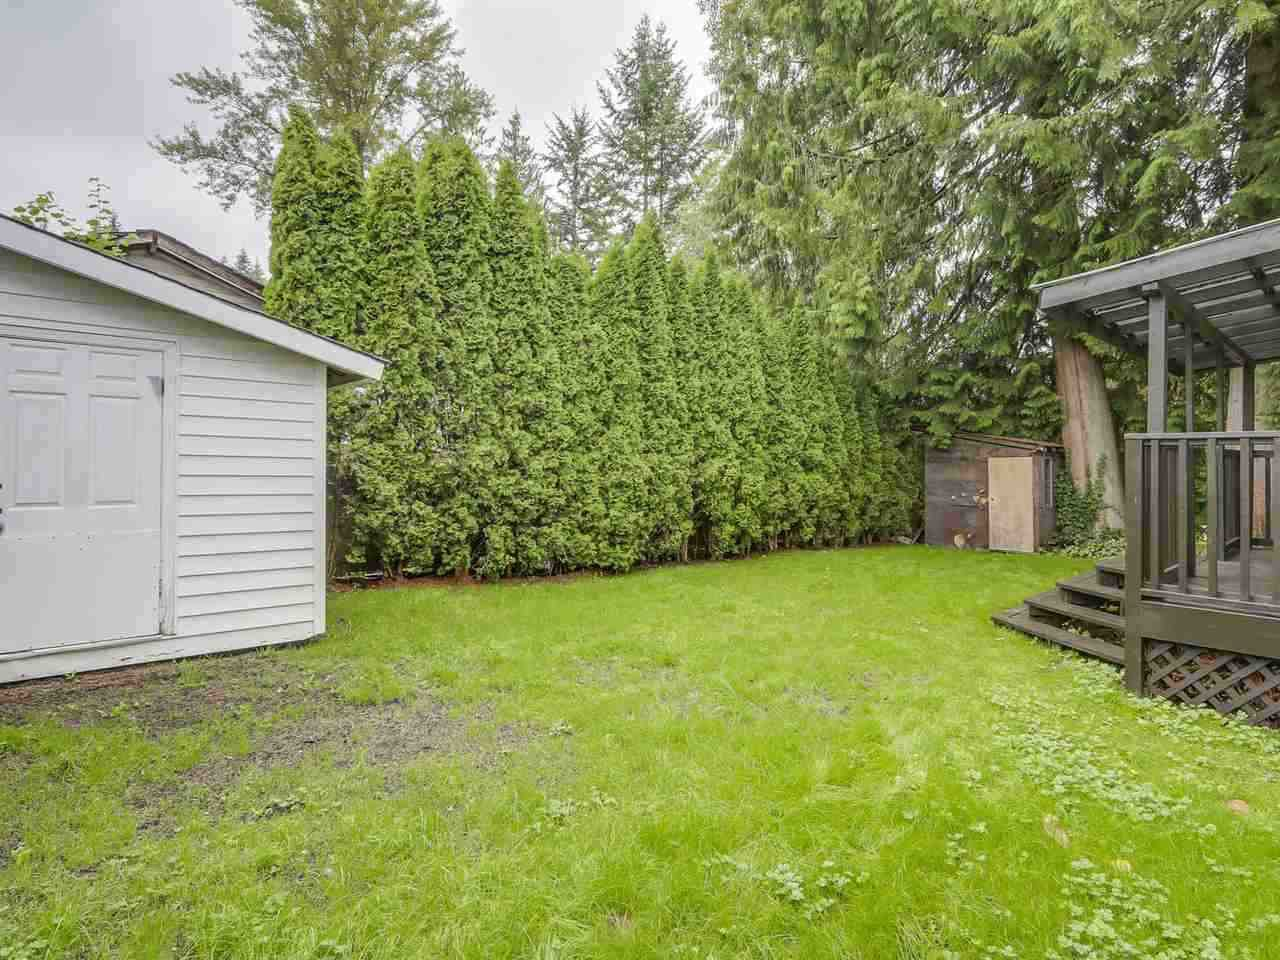 """Photo 15: Photos: 1673 GREENMOUNT Avenue in Port Coquitlam: Oxford Heights 1/2 Duplex for sale in """"OXFORD HEIGHTS"""" : MLS®# R2221936"""